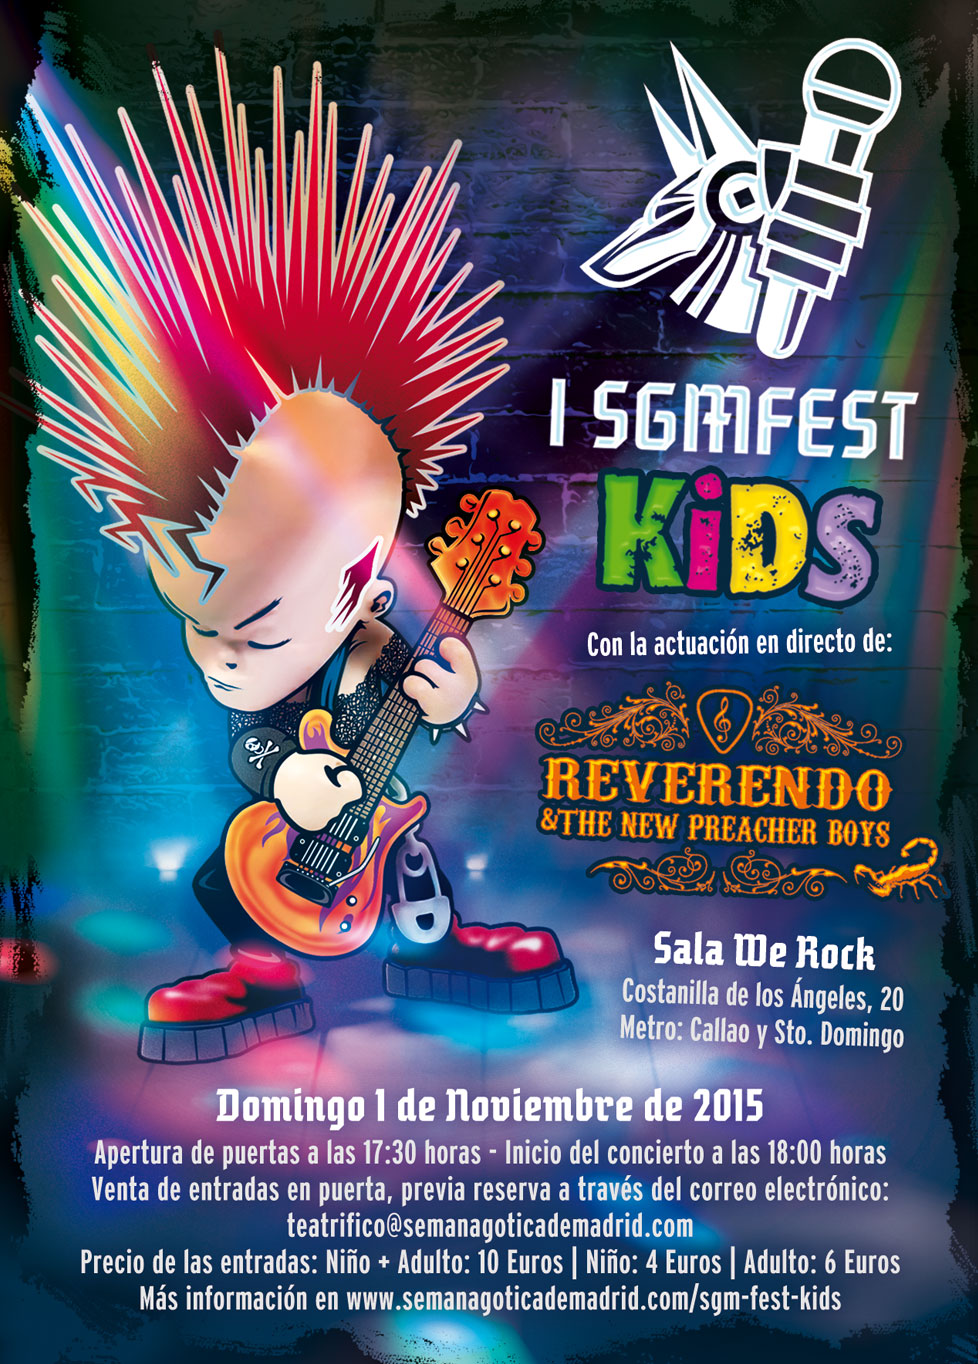 SGM FEST KIDS 2015 - I Edition of Semana Gótica de Madrid Festival For Kids